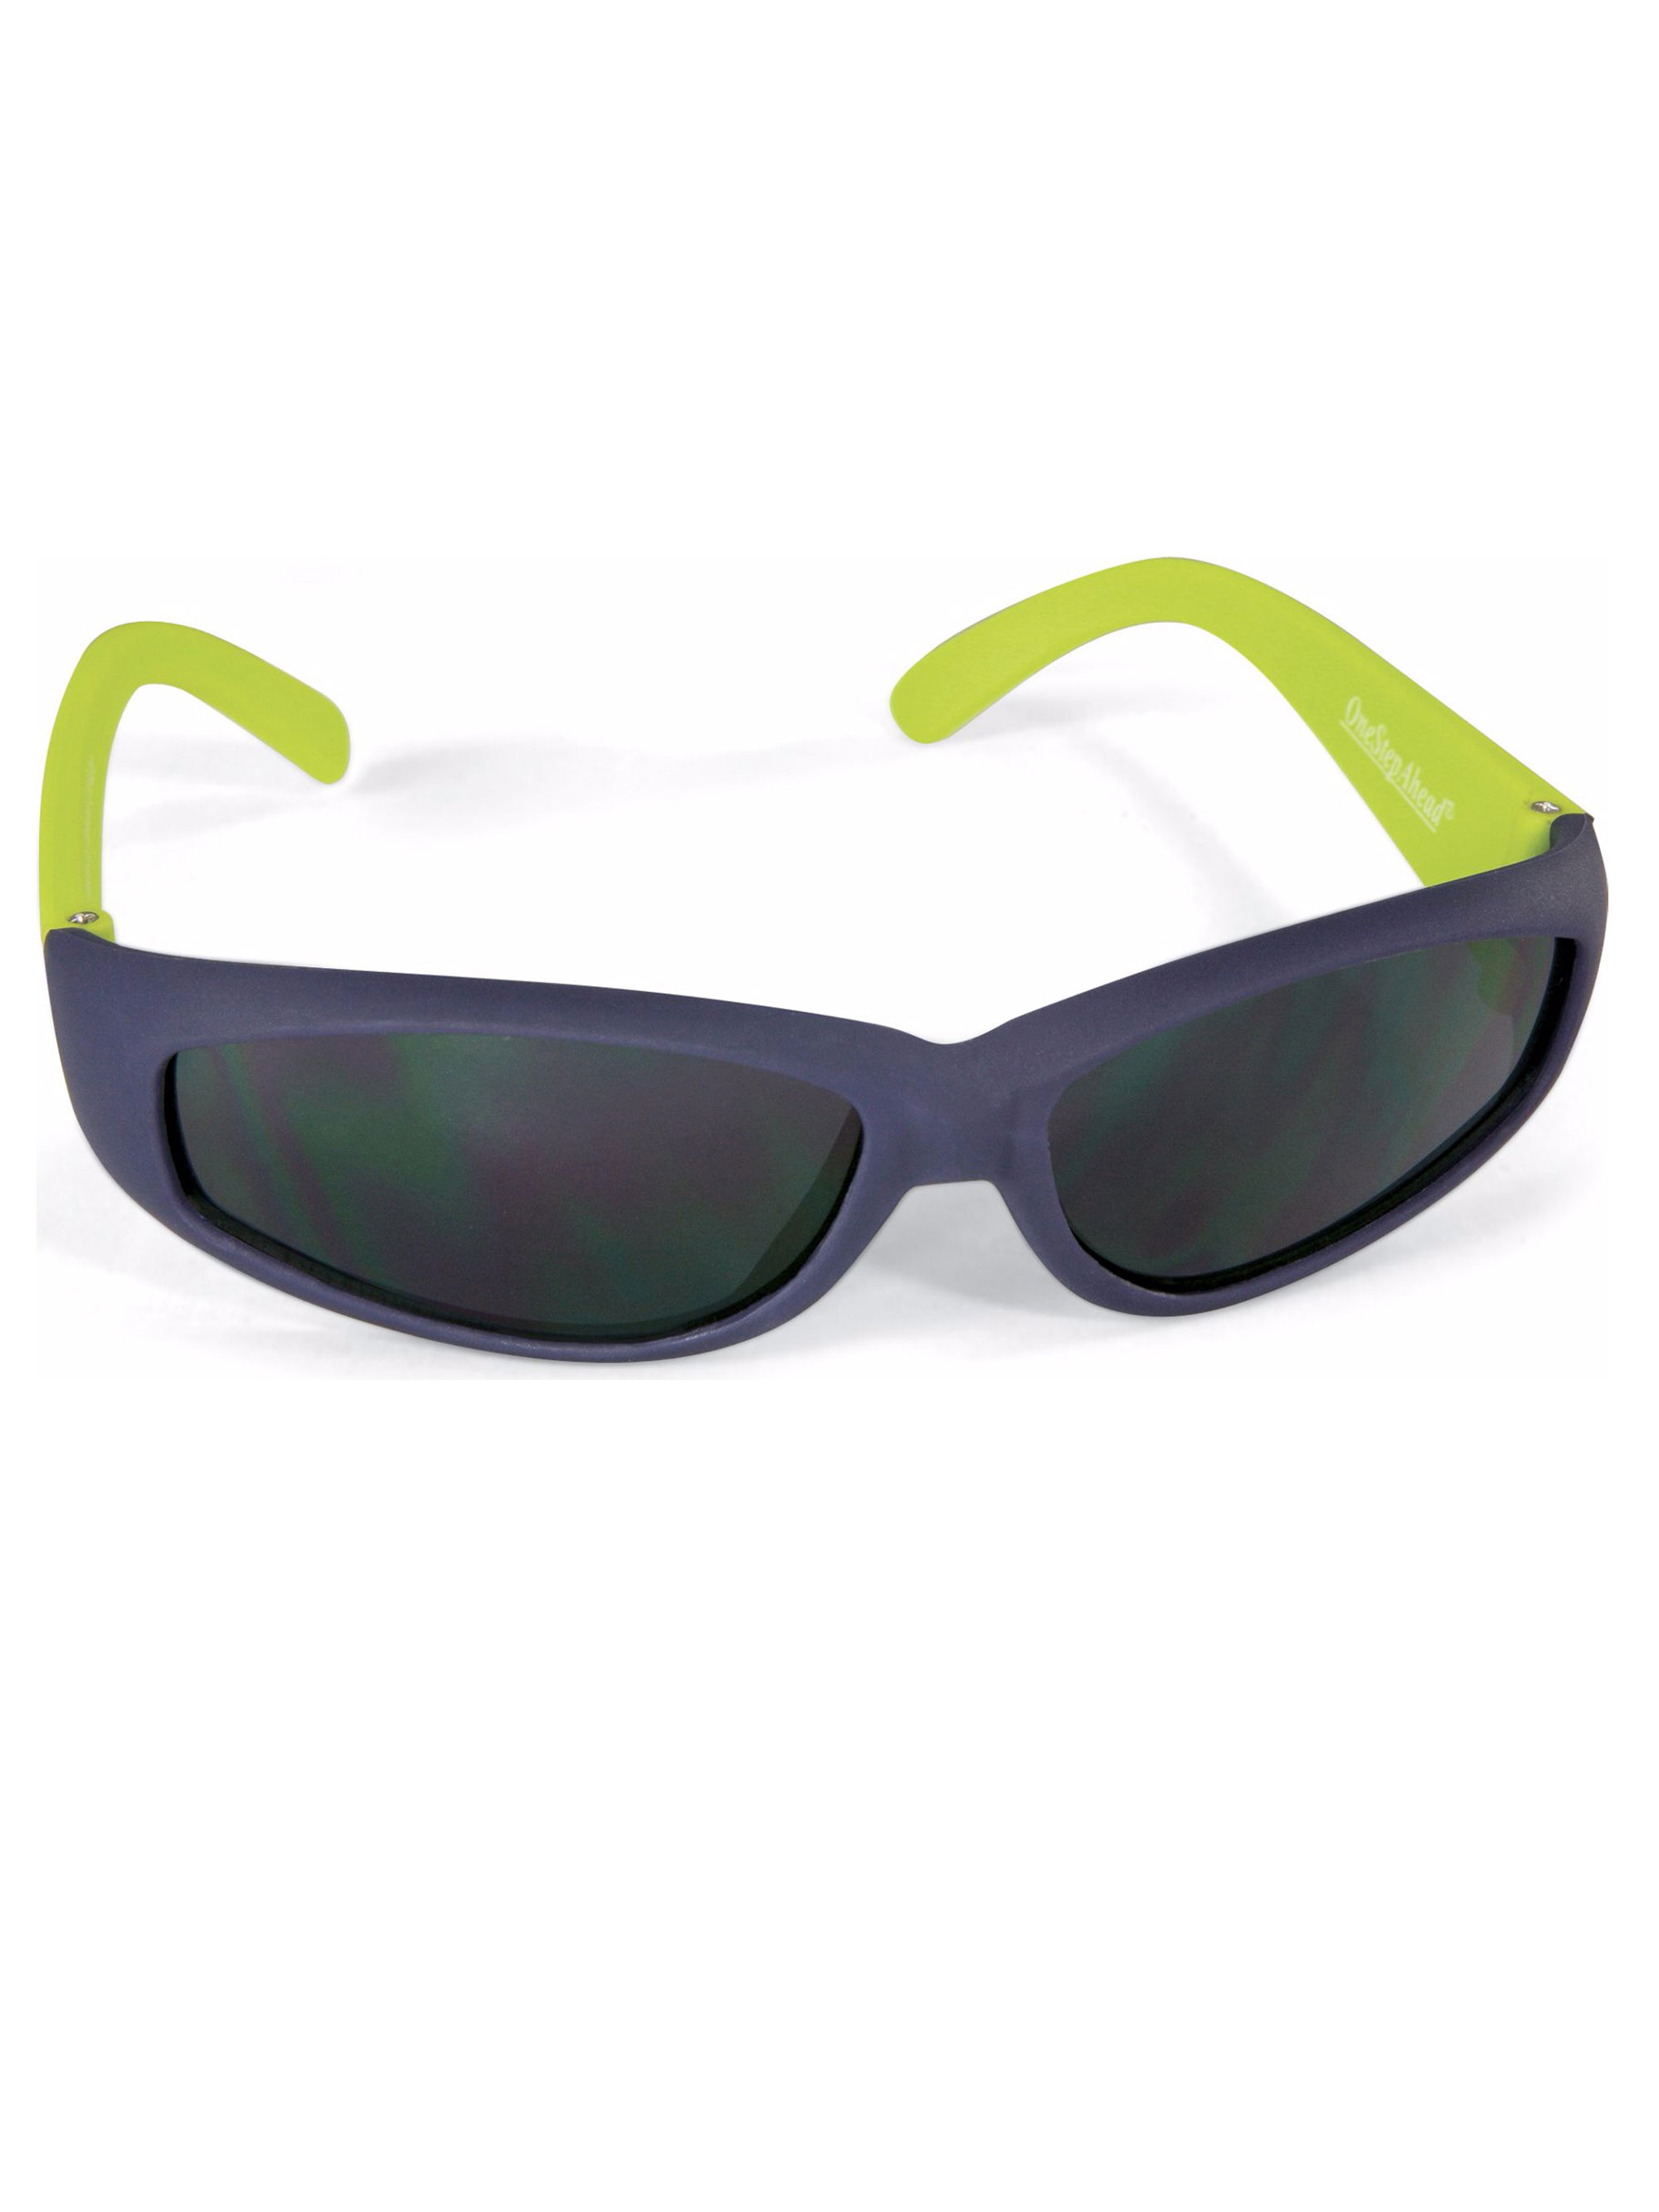 Sun Smarties Baby and Toddler Boy UV Protected Sunglasses - Blue and Green